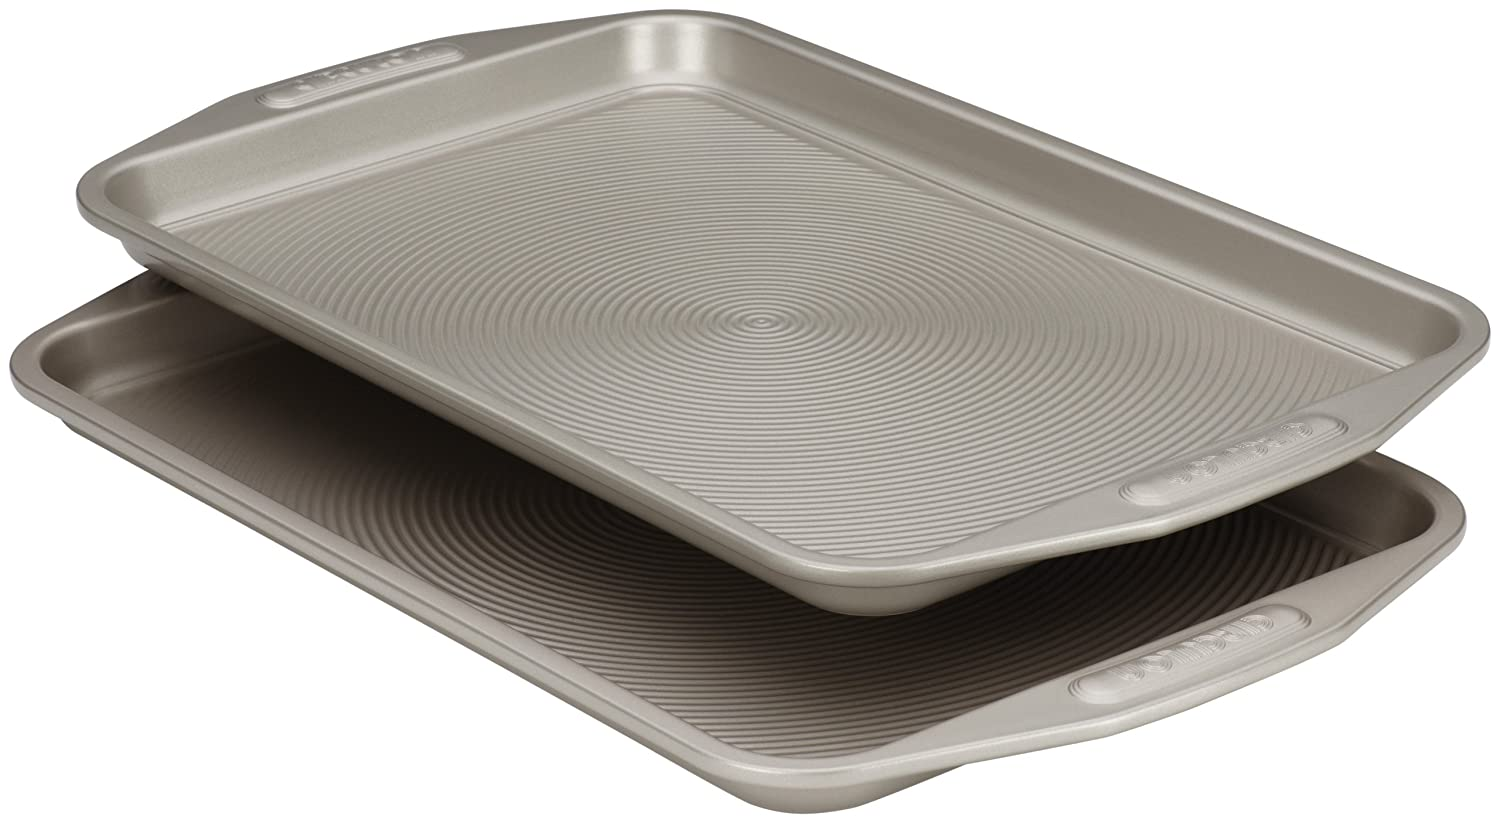 The Circulon 10 by 15-inch nonstick bakeware 2-piece set cookie baking pan